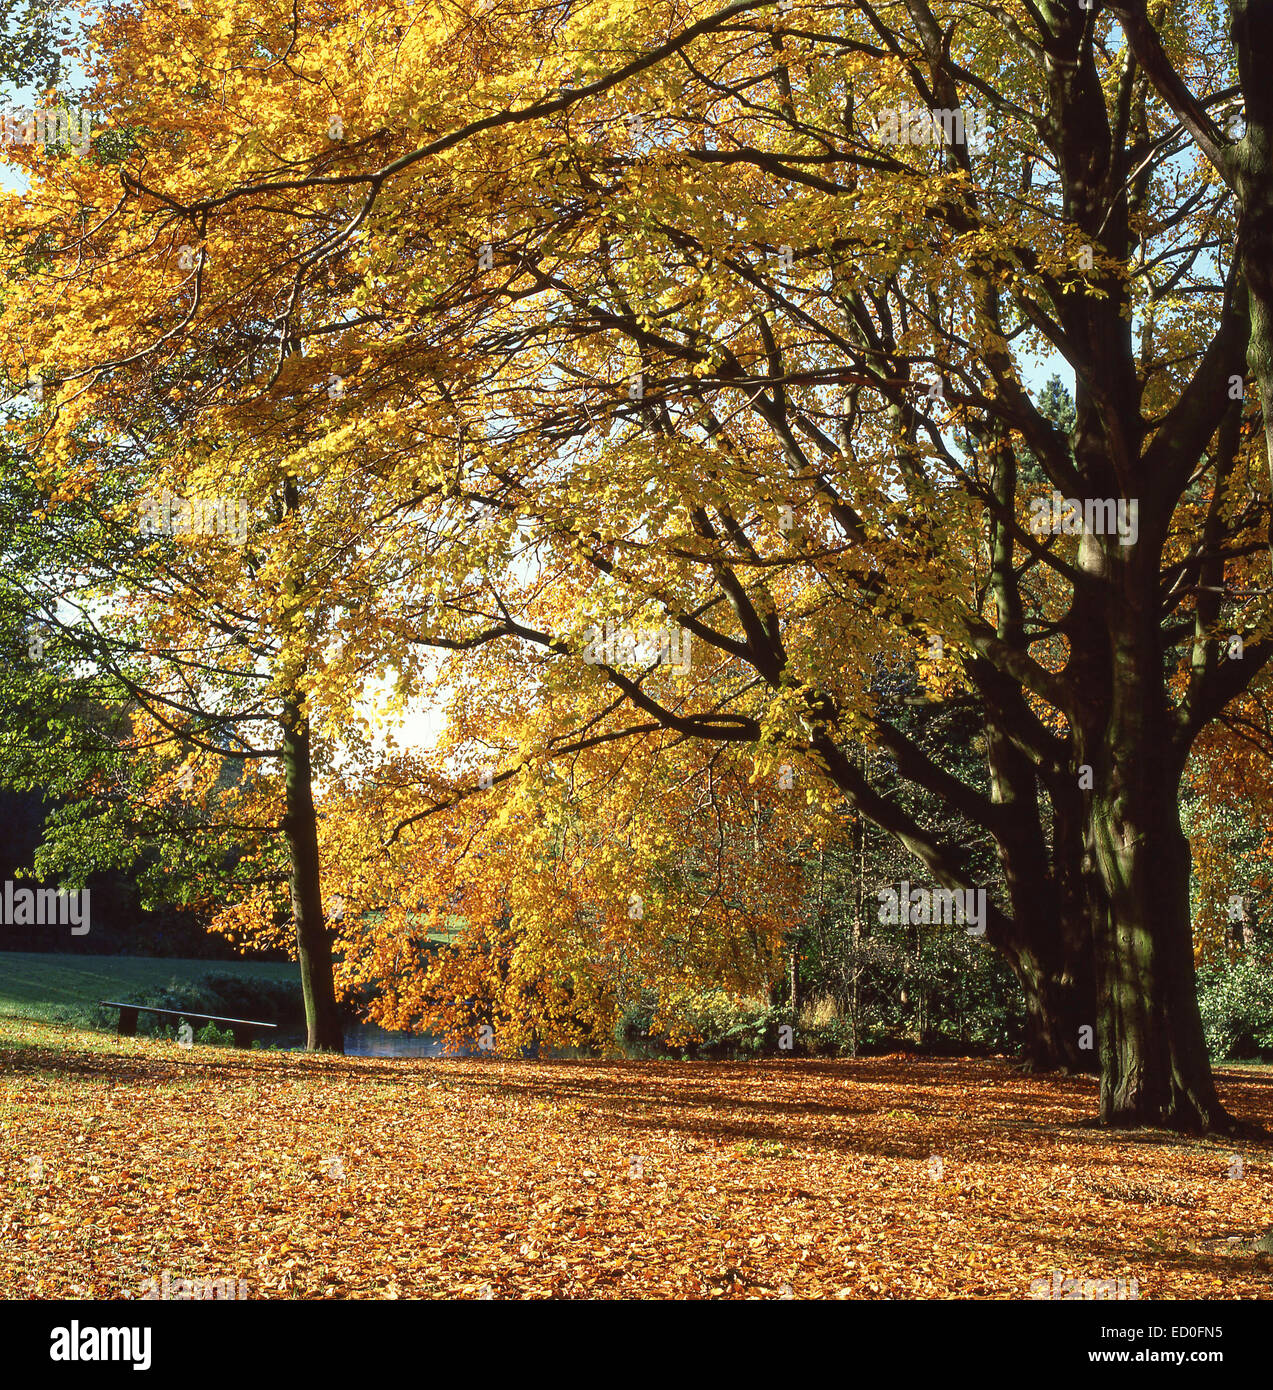 Bramall Hall Park in autumn, Bramhall, Stockport, Greater Manchester, England, United Kingdom - Stock Image